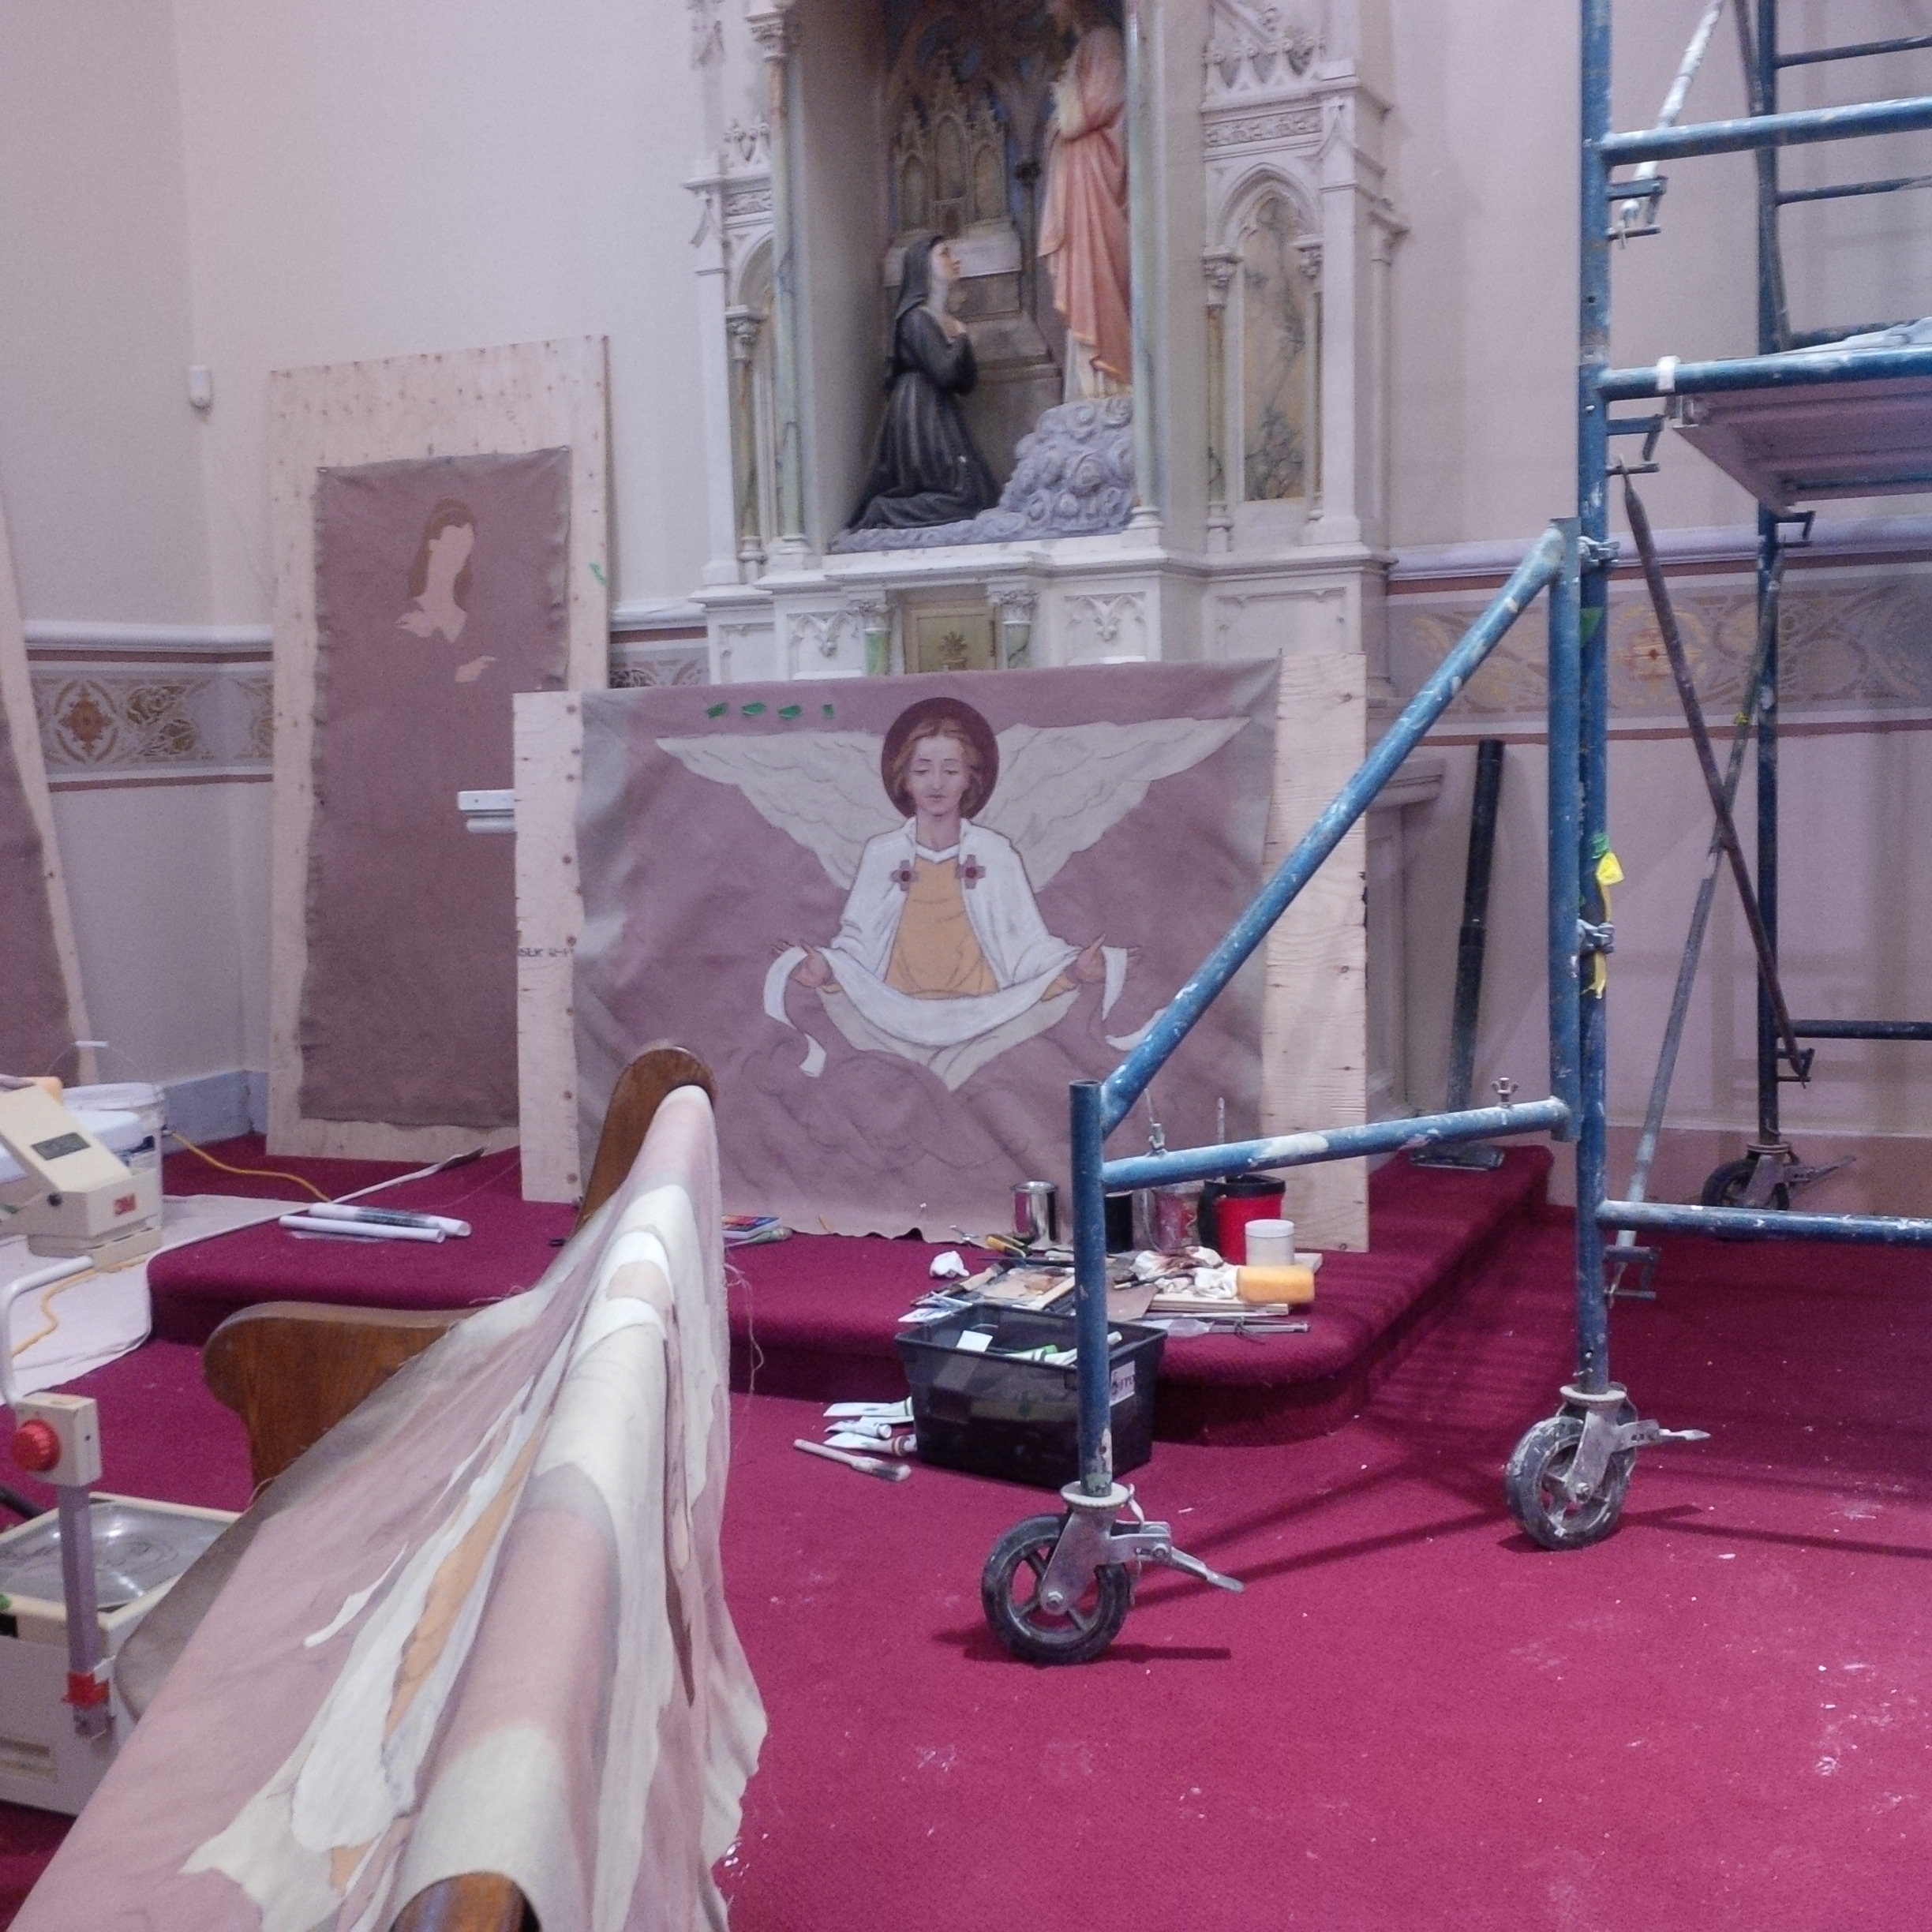 Inside Church Renovations Pics Towards The End!